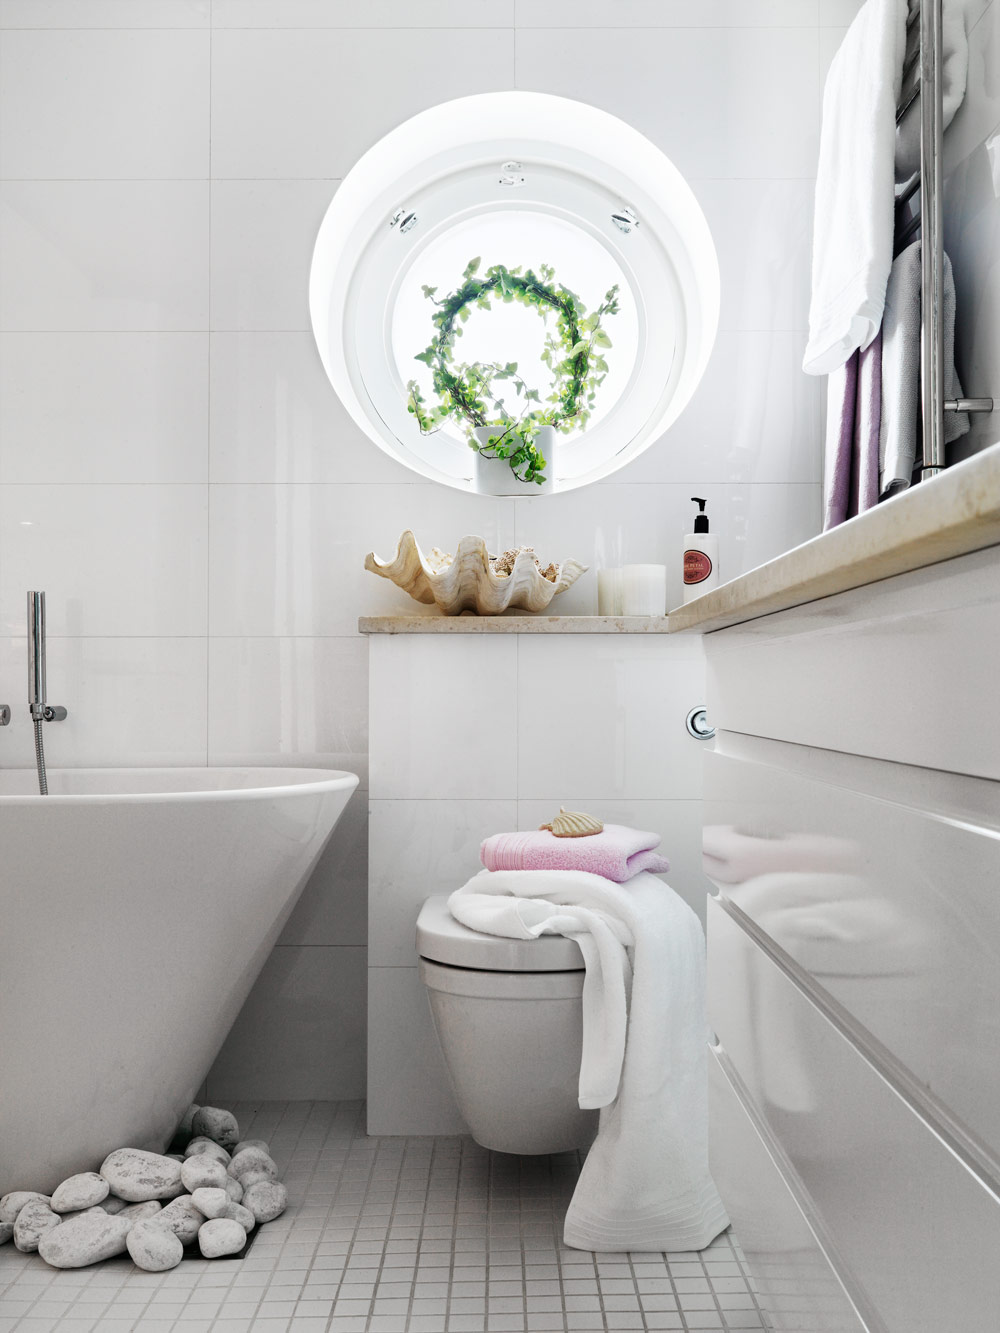 Stylish small bathroom with an unusual decor digsdigs for Images of small bathrooms